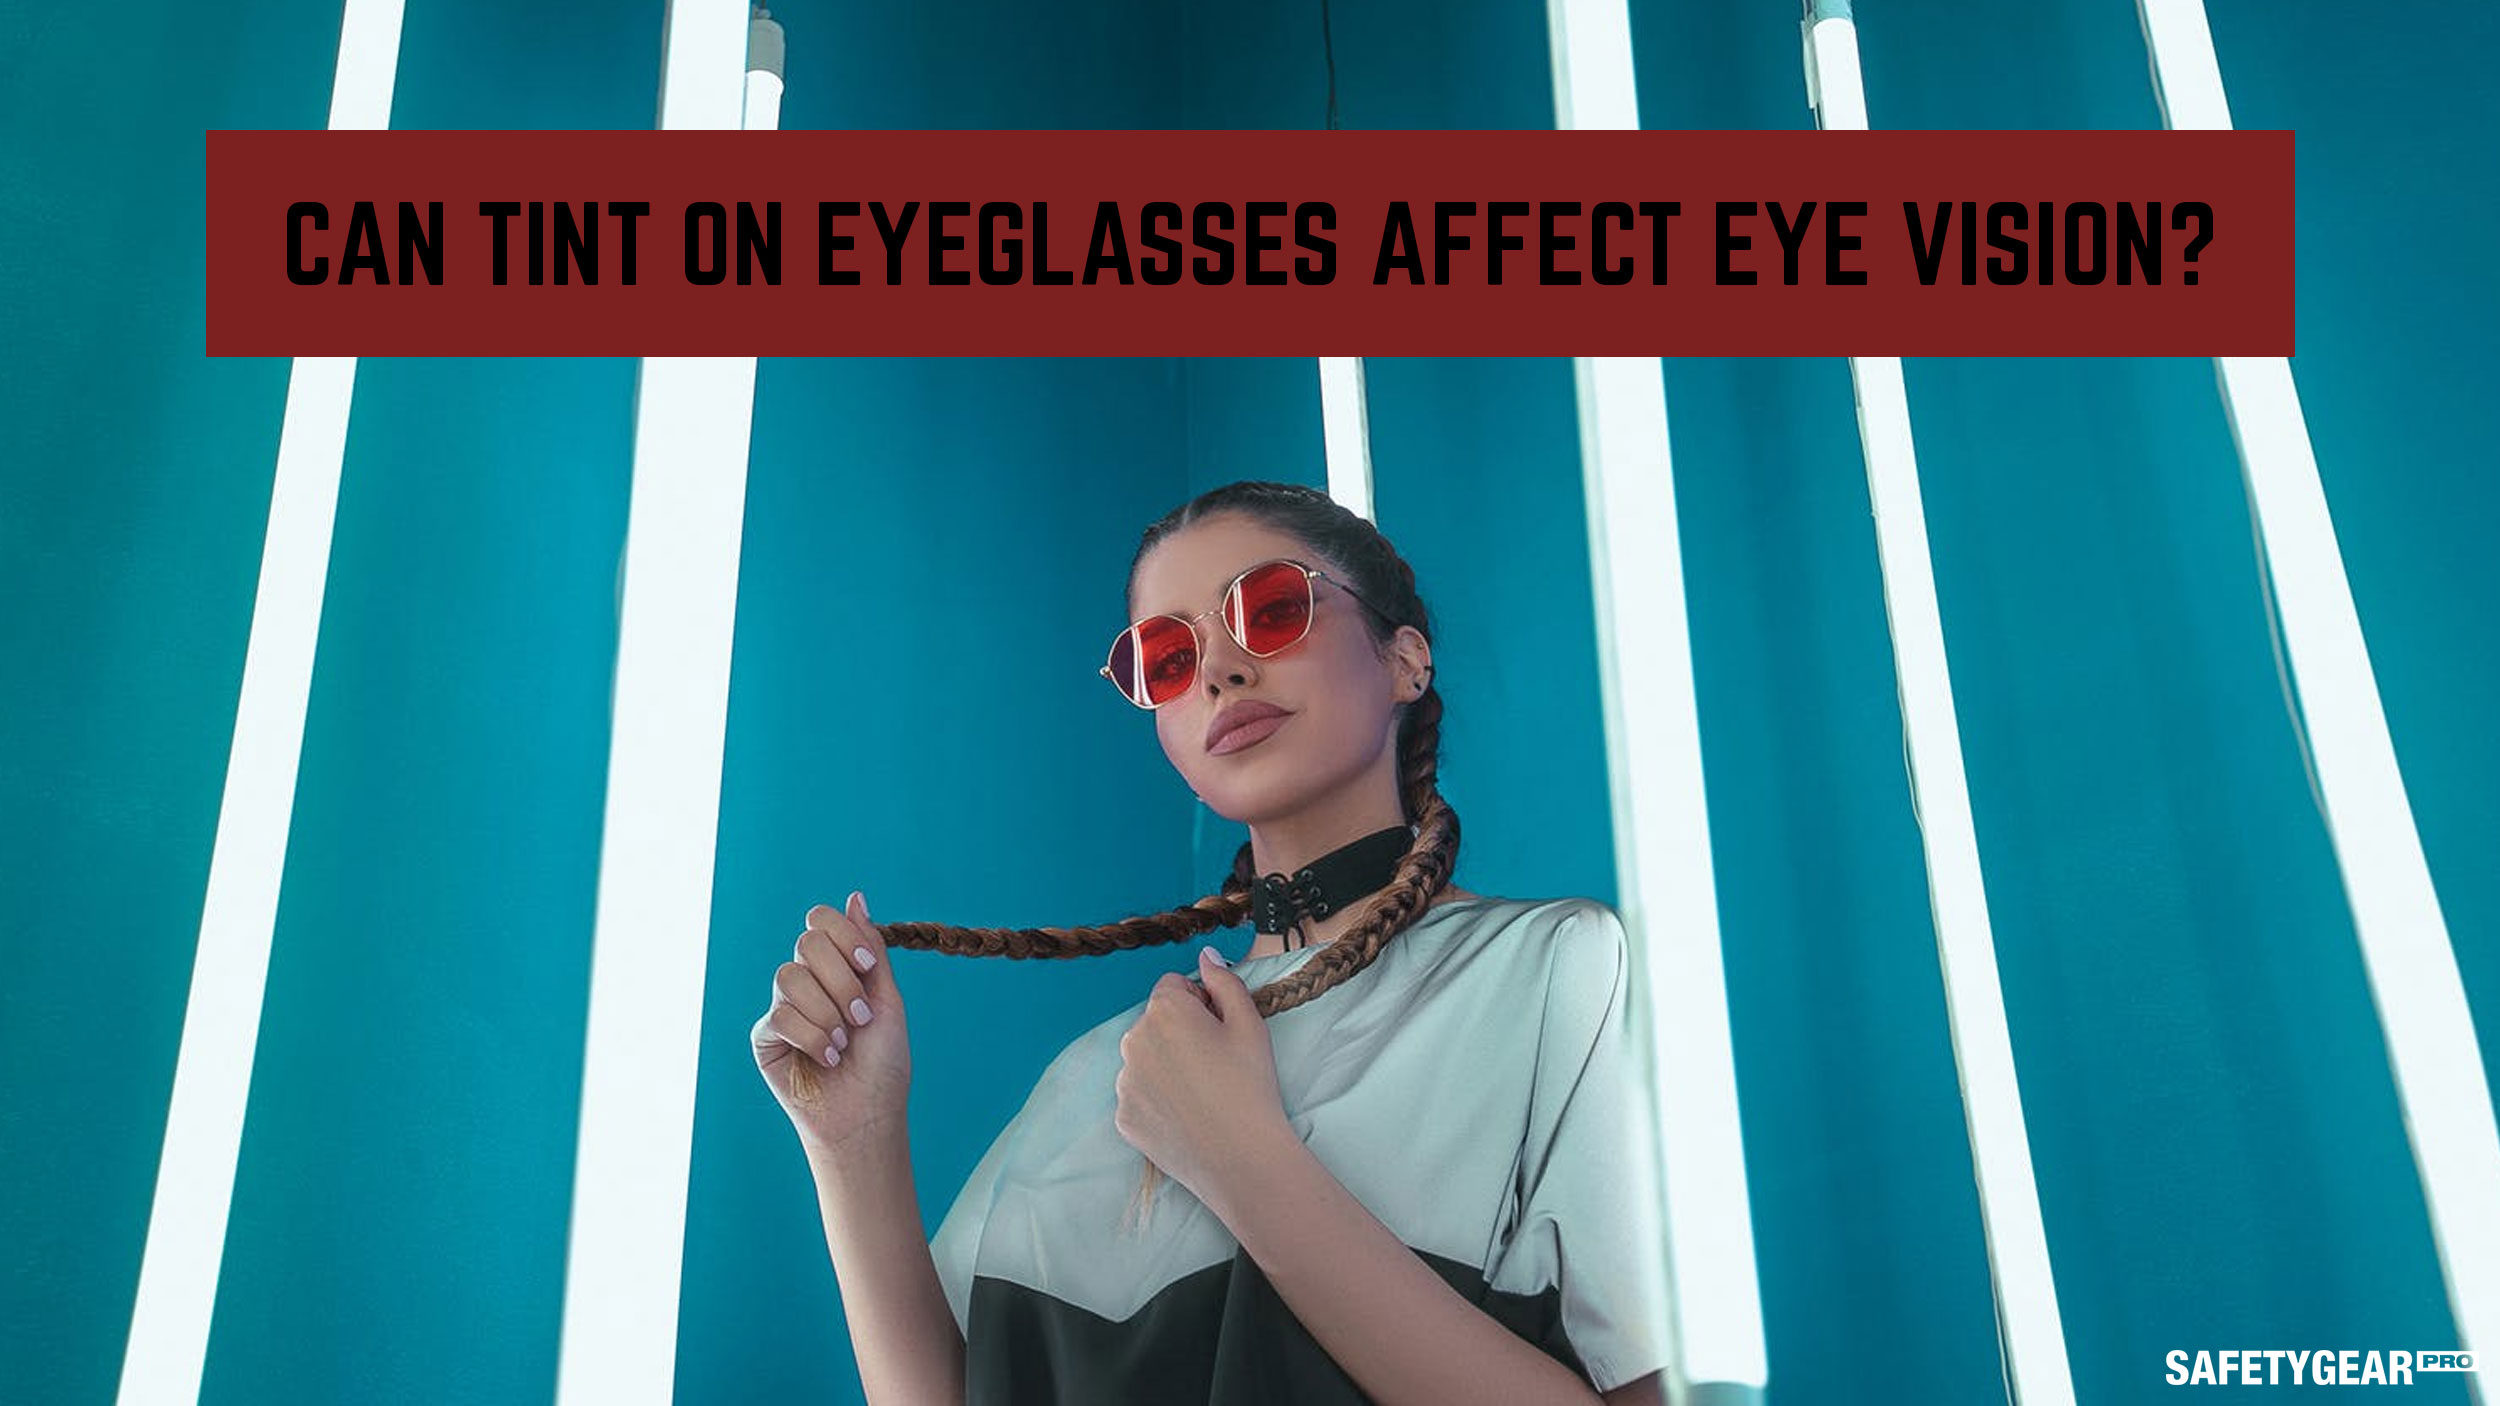 can tint on eyeglasses affect eye vision?